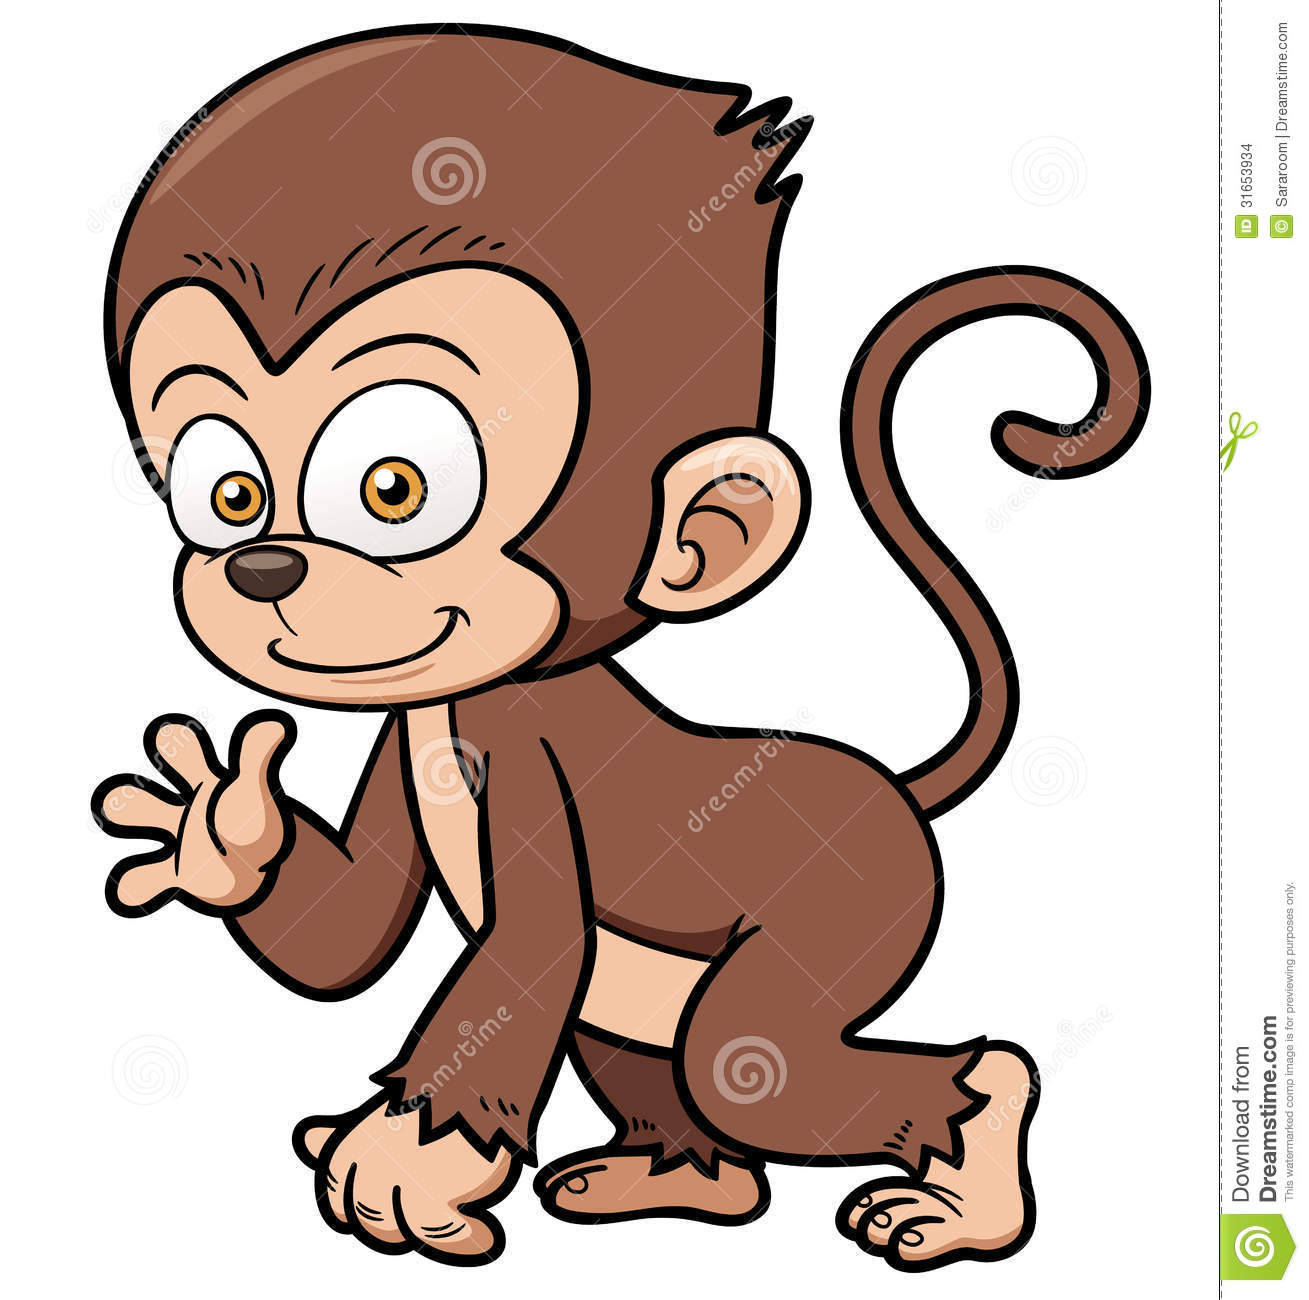 monkey cartoon wallpaper - photo #29